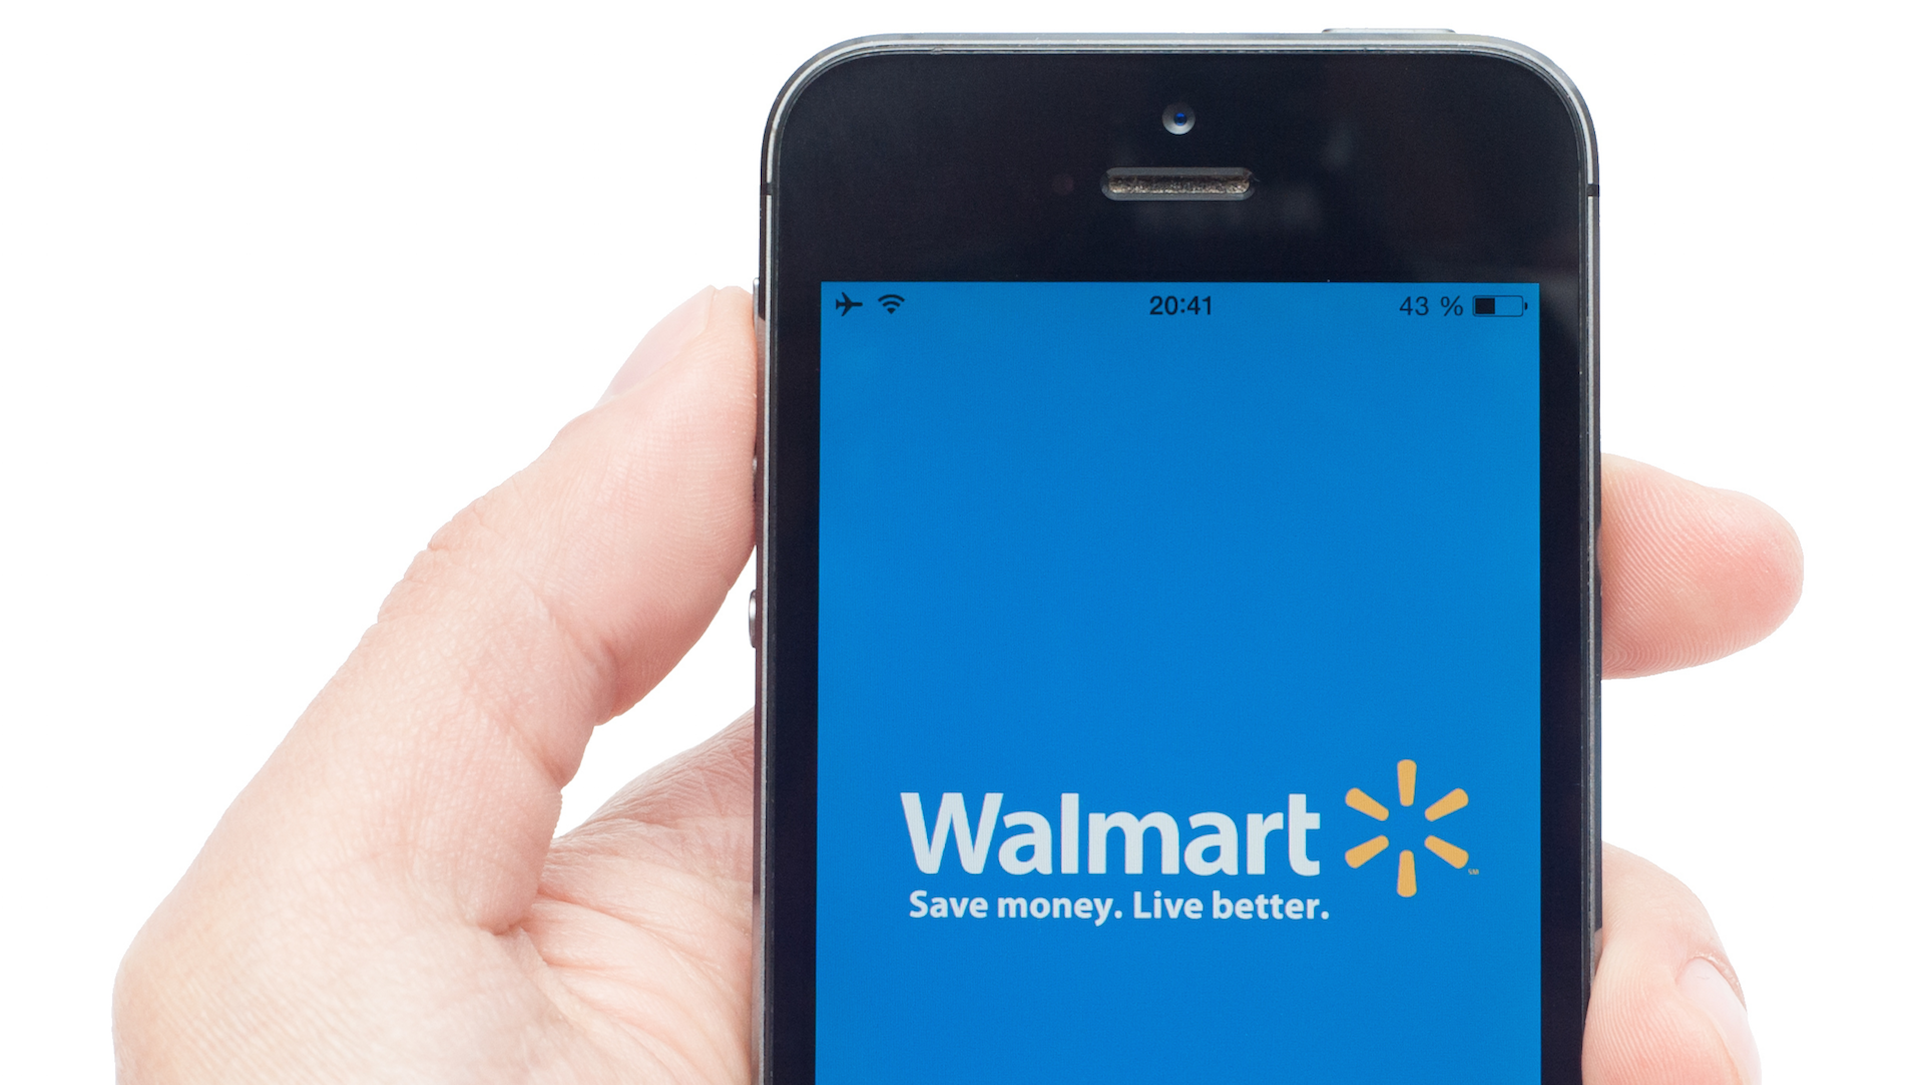 Wondering what Walmart Marketplace is all about?